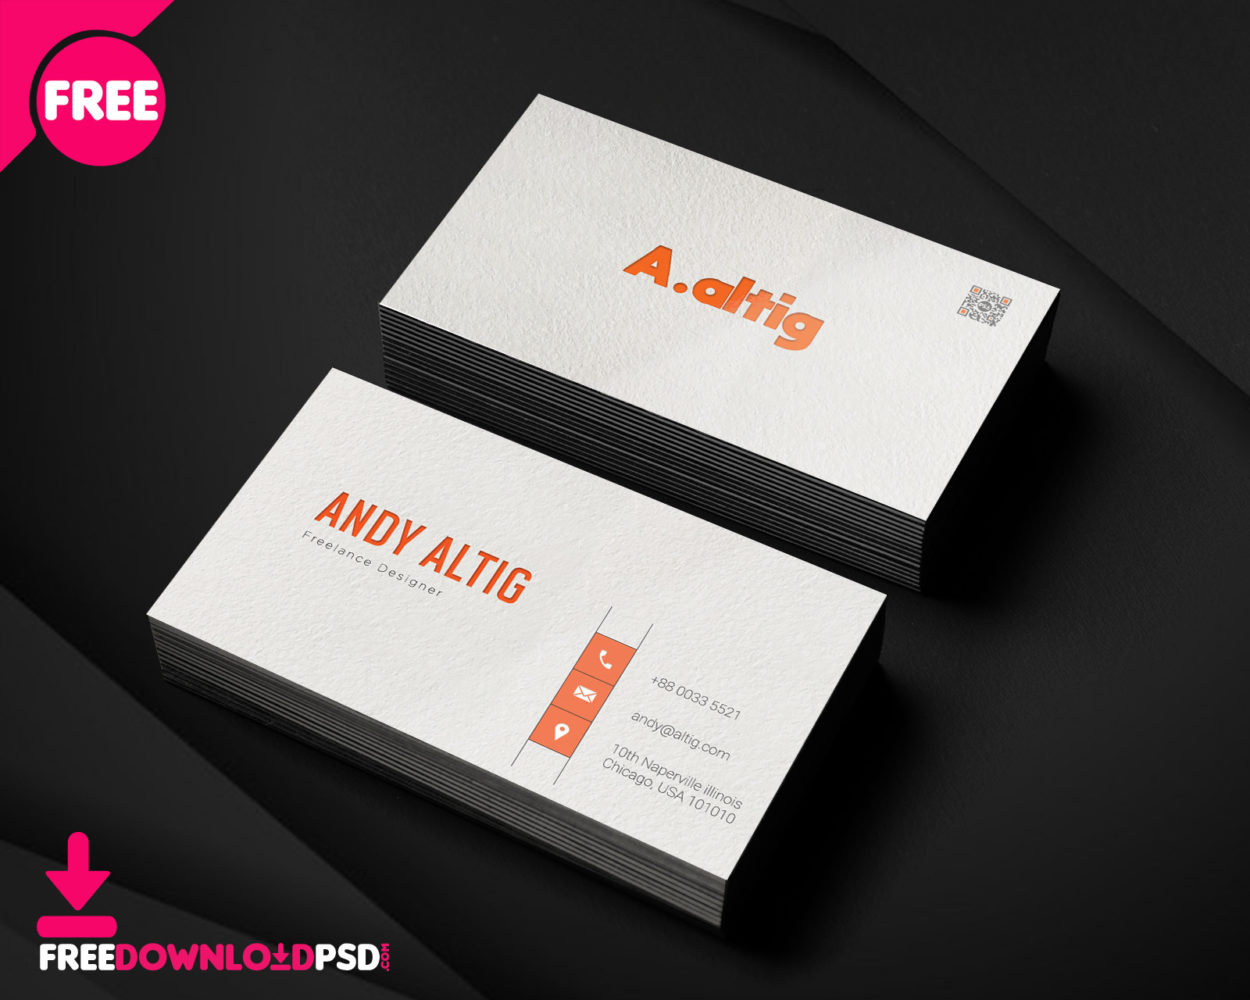 150 free business card psd templates freelance business card psd template cheaphphosting Gallery